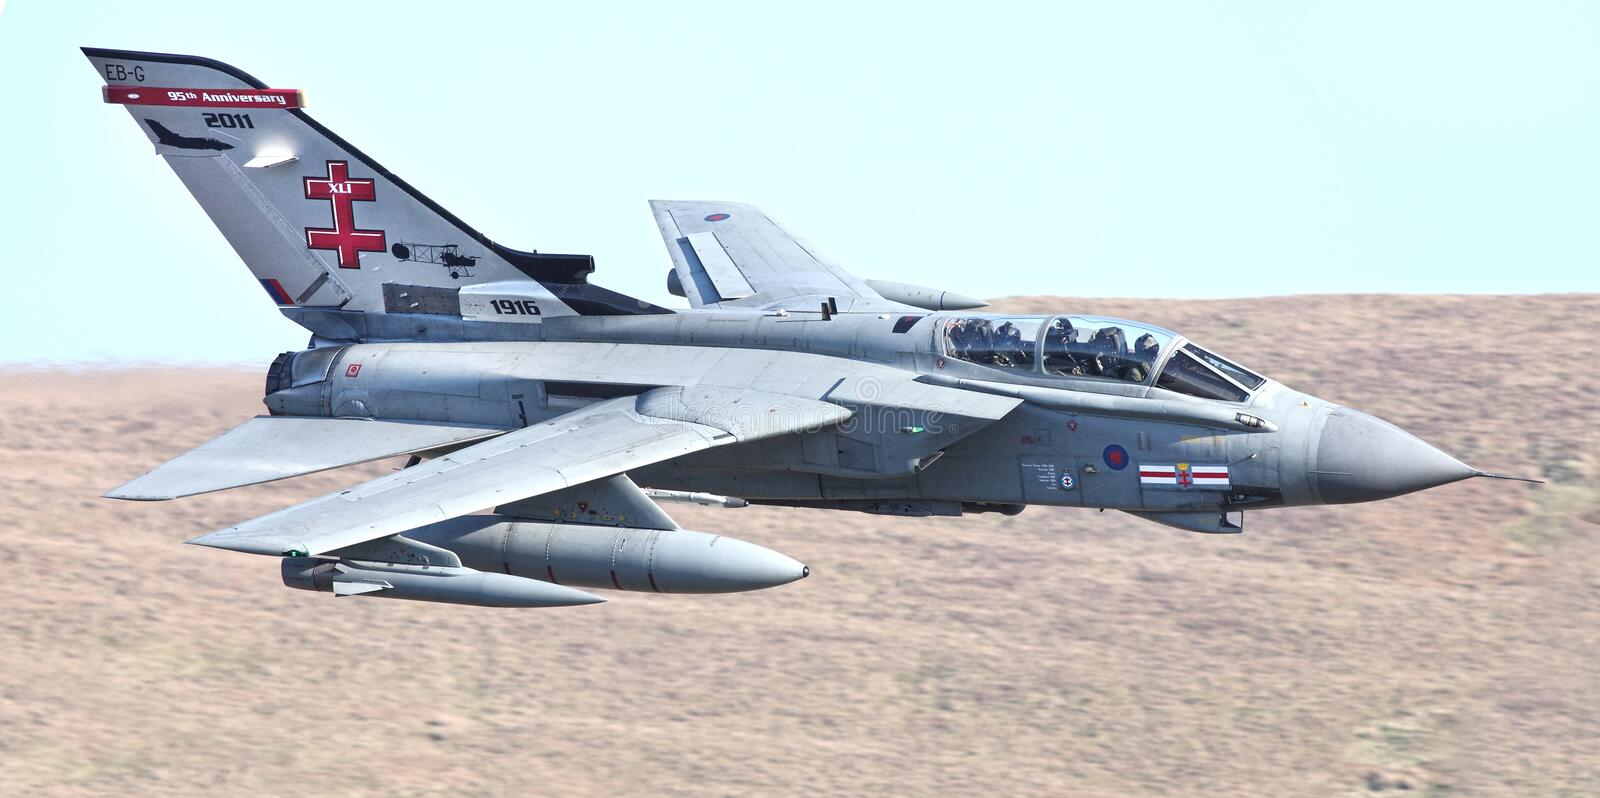 Fighter jet military aircraft stock photo